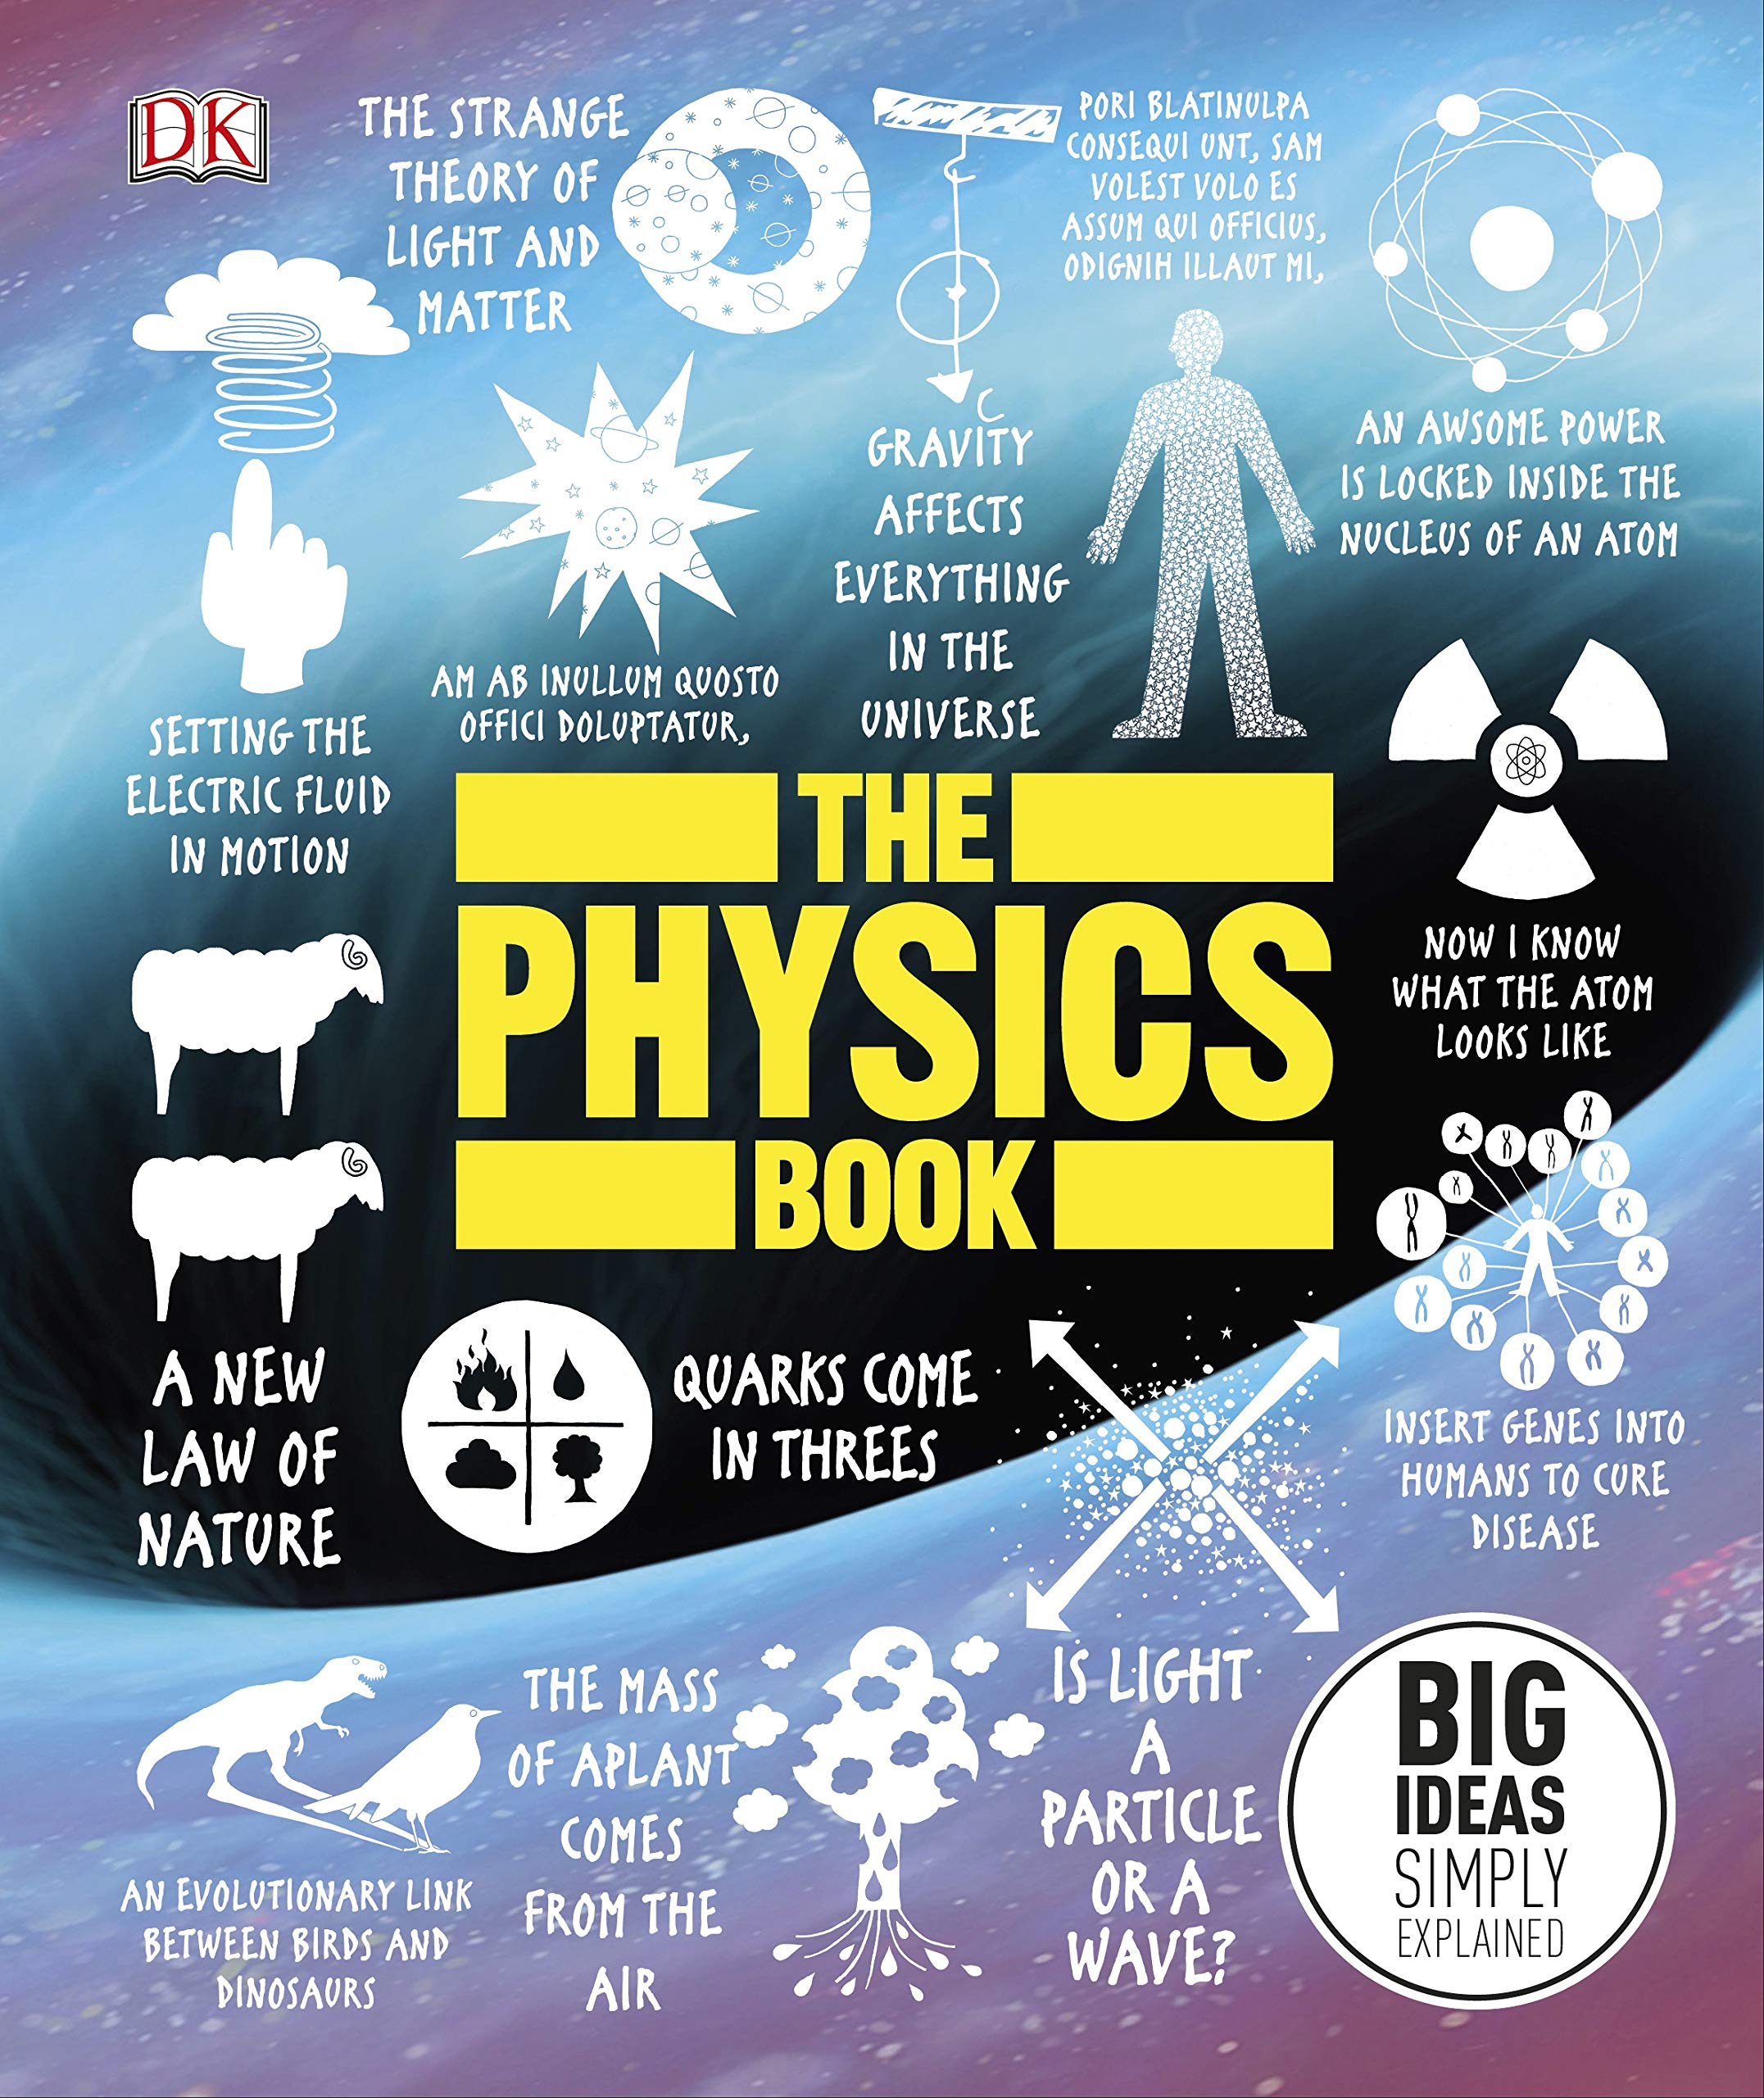 The Physics Book Big Ideas Simply Explained by DK z-lib org